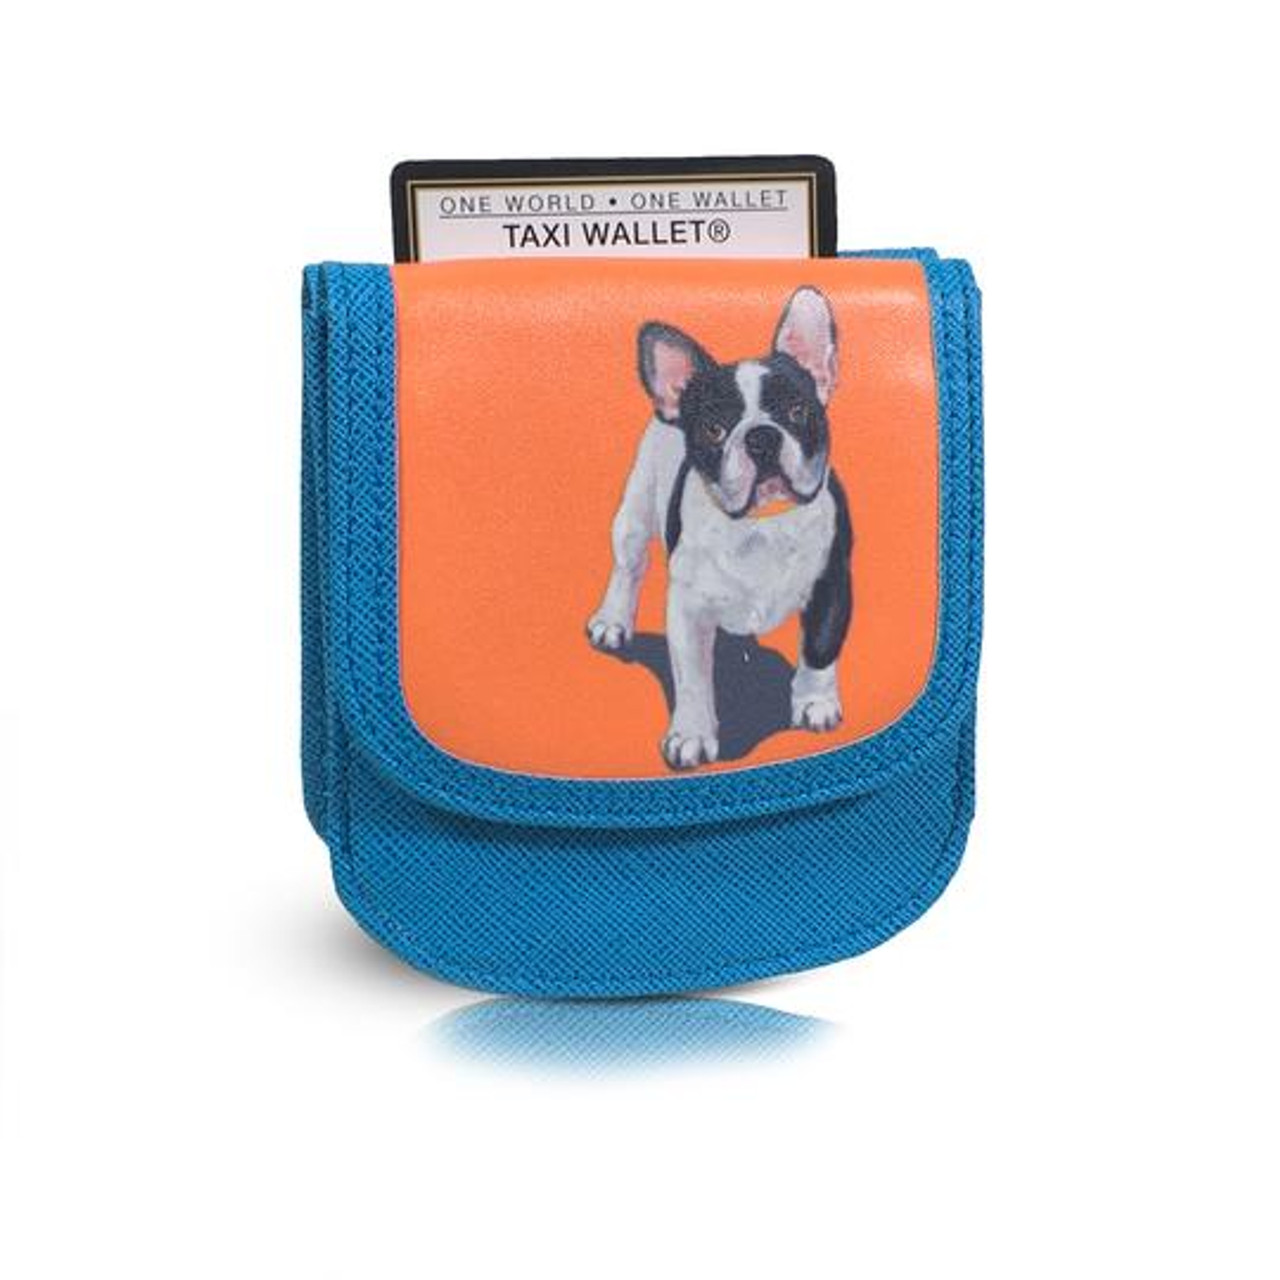 f7b96e13b777 Alicia Klein - French Bulldog Wallet by TAXI WALLET®